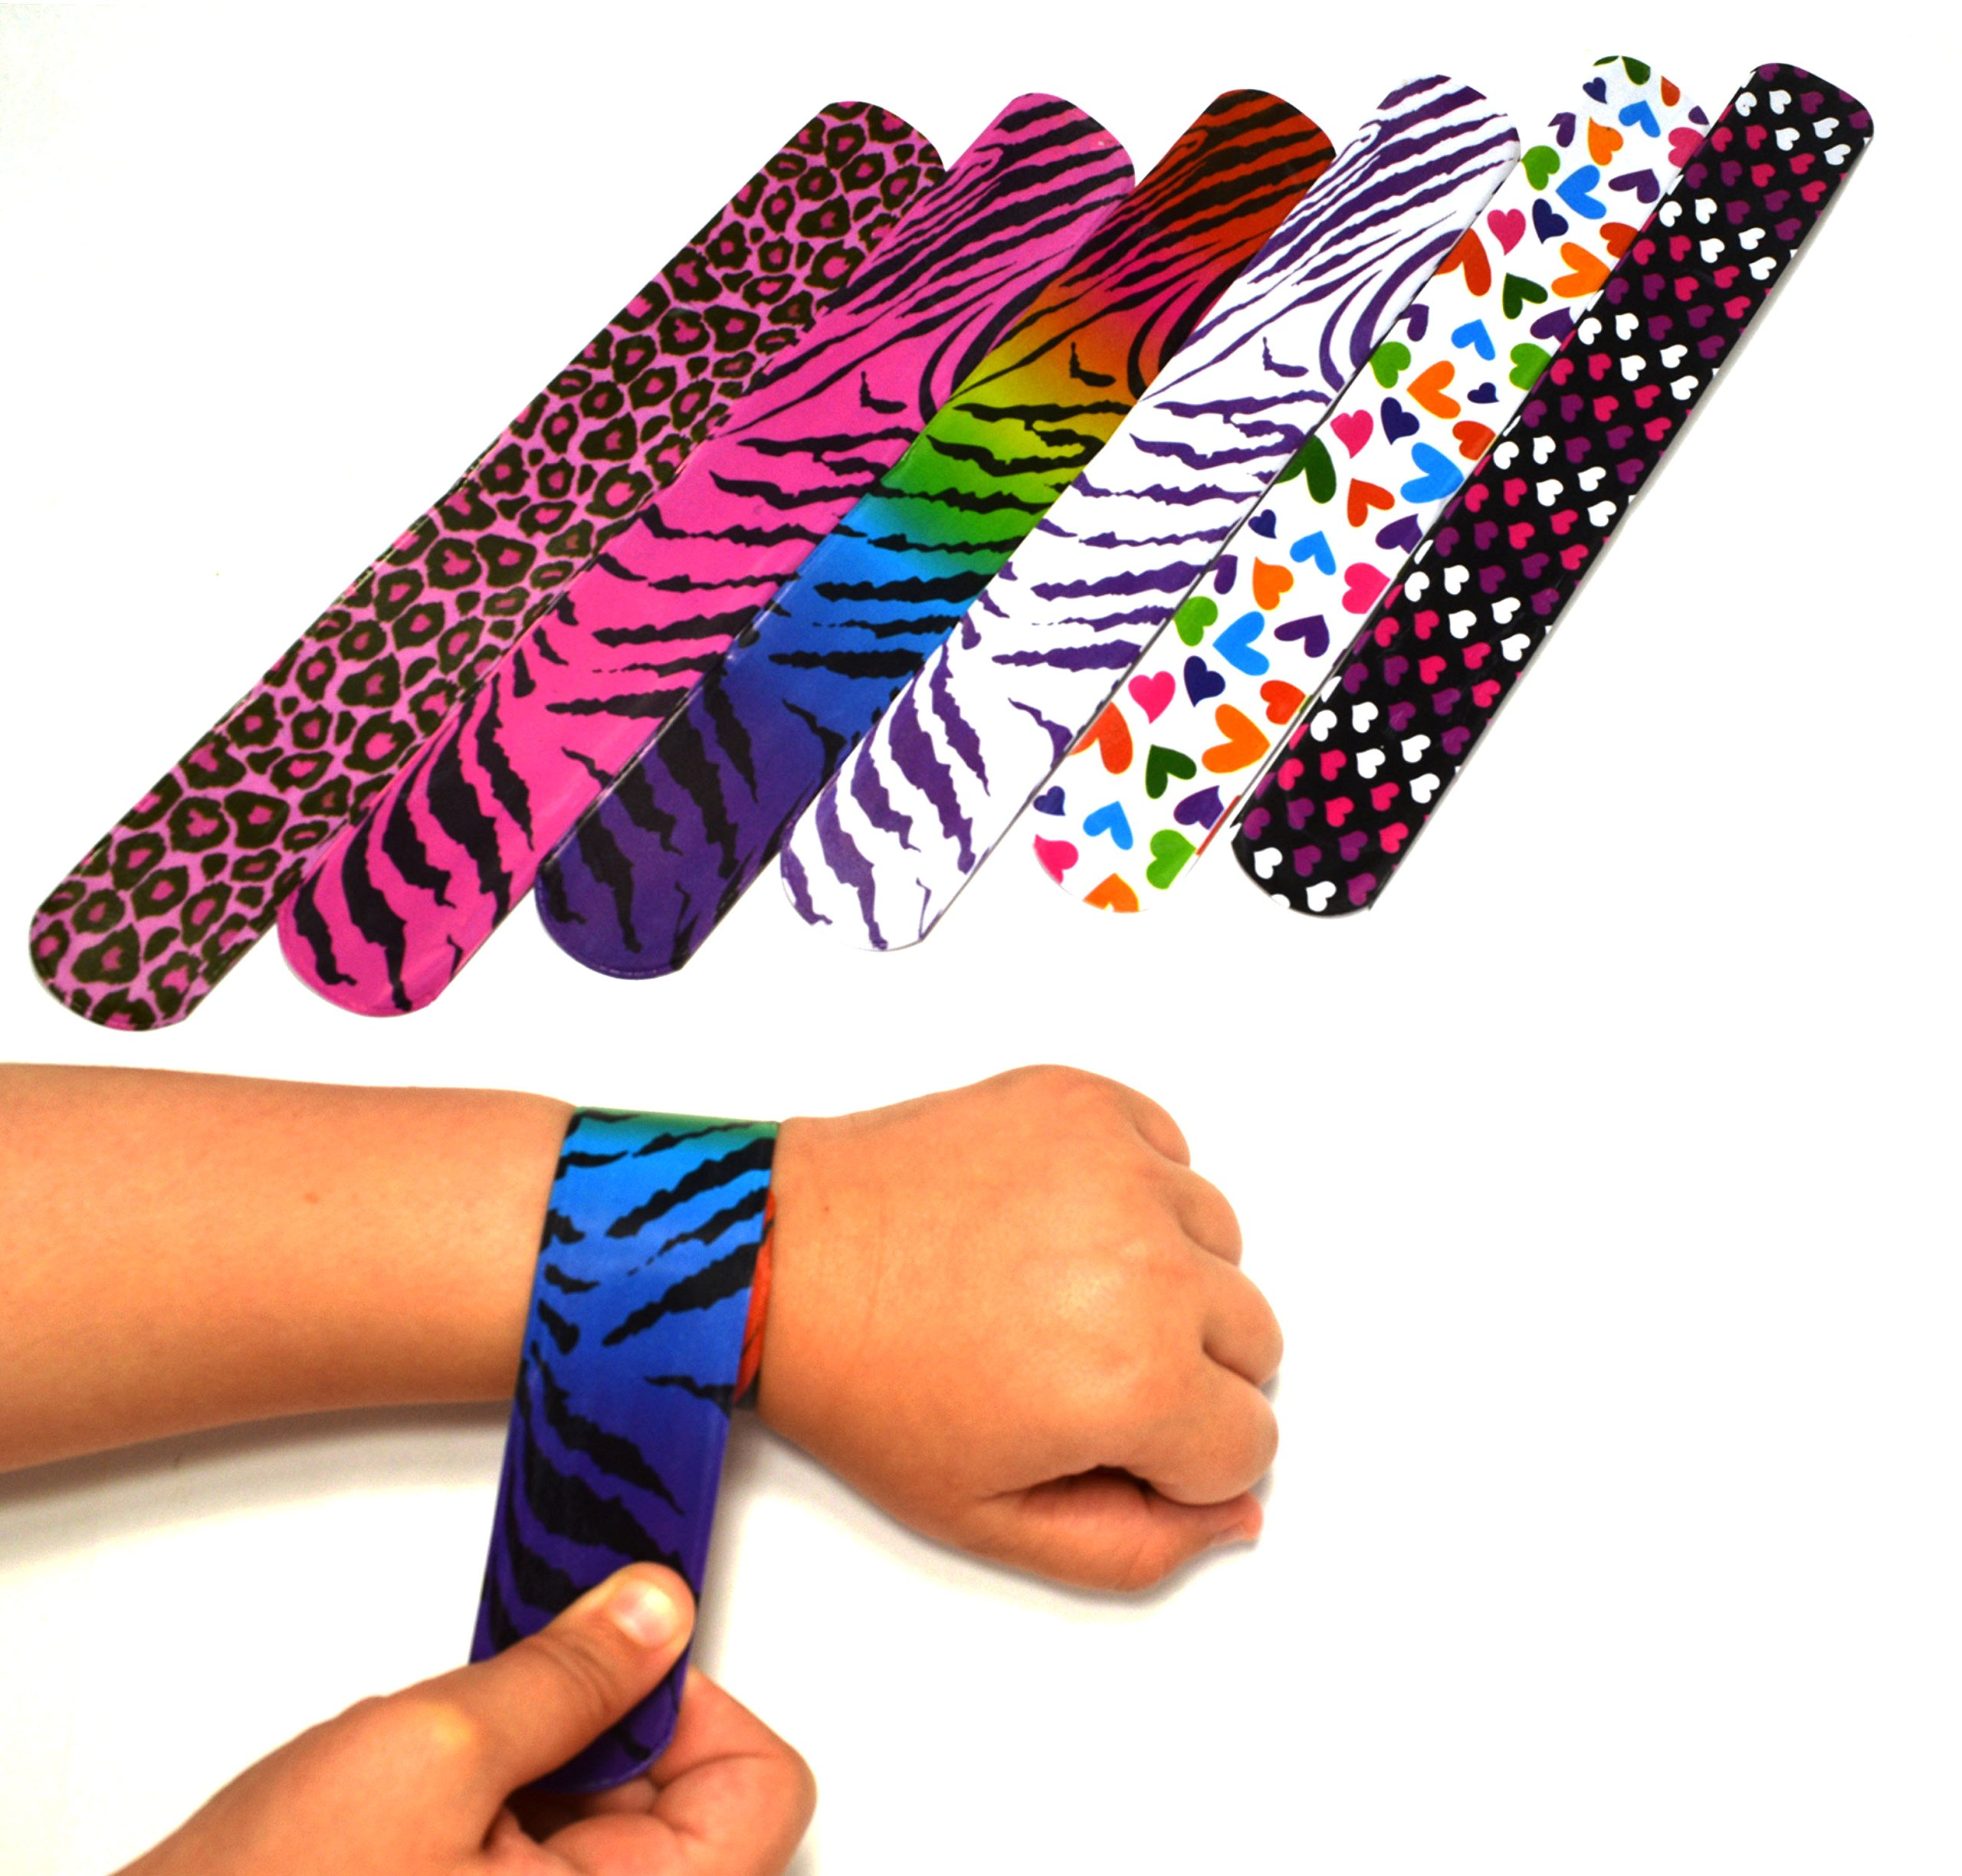 dazzling toys 50 Mega Pack Slap Bracelets | 80' Accessory Slap Bands Birthday Party Supplies Favors with Hearts & Animal Print | One Size Fits All by dazzling toys